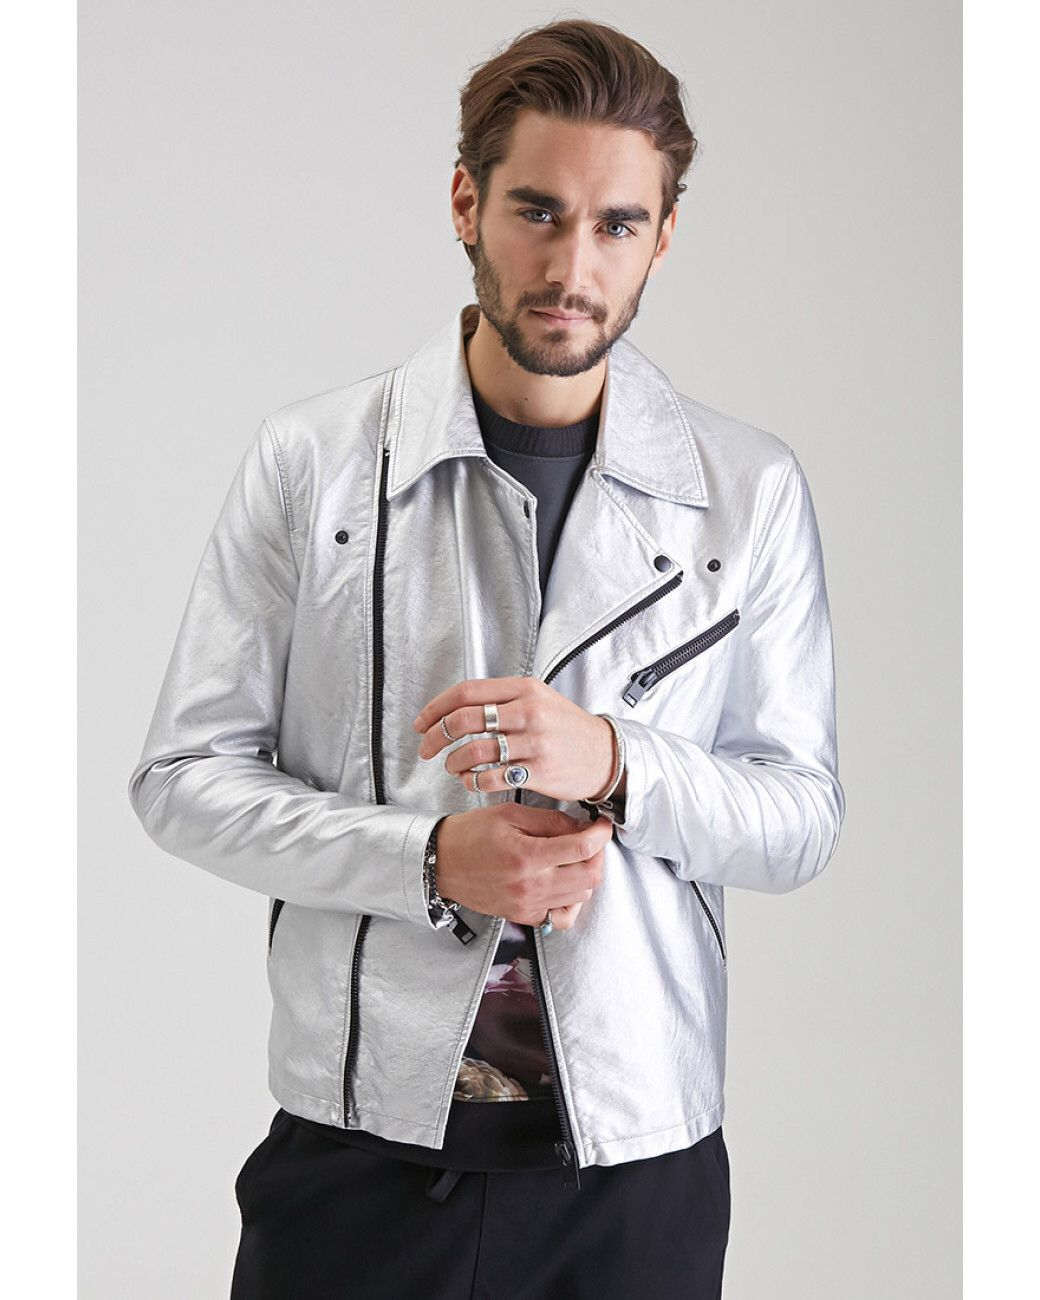 21men Silver Leather Jacket Mens Jackets Fall New Look Clothes Mens Outfits